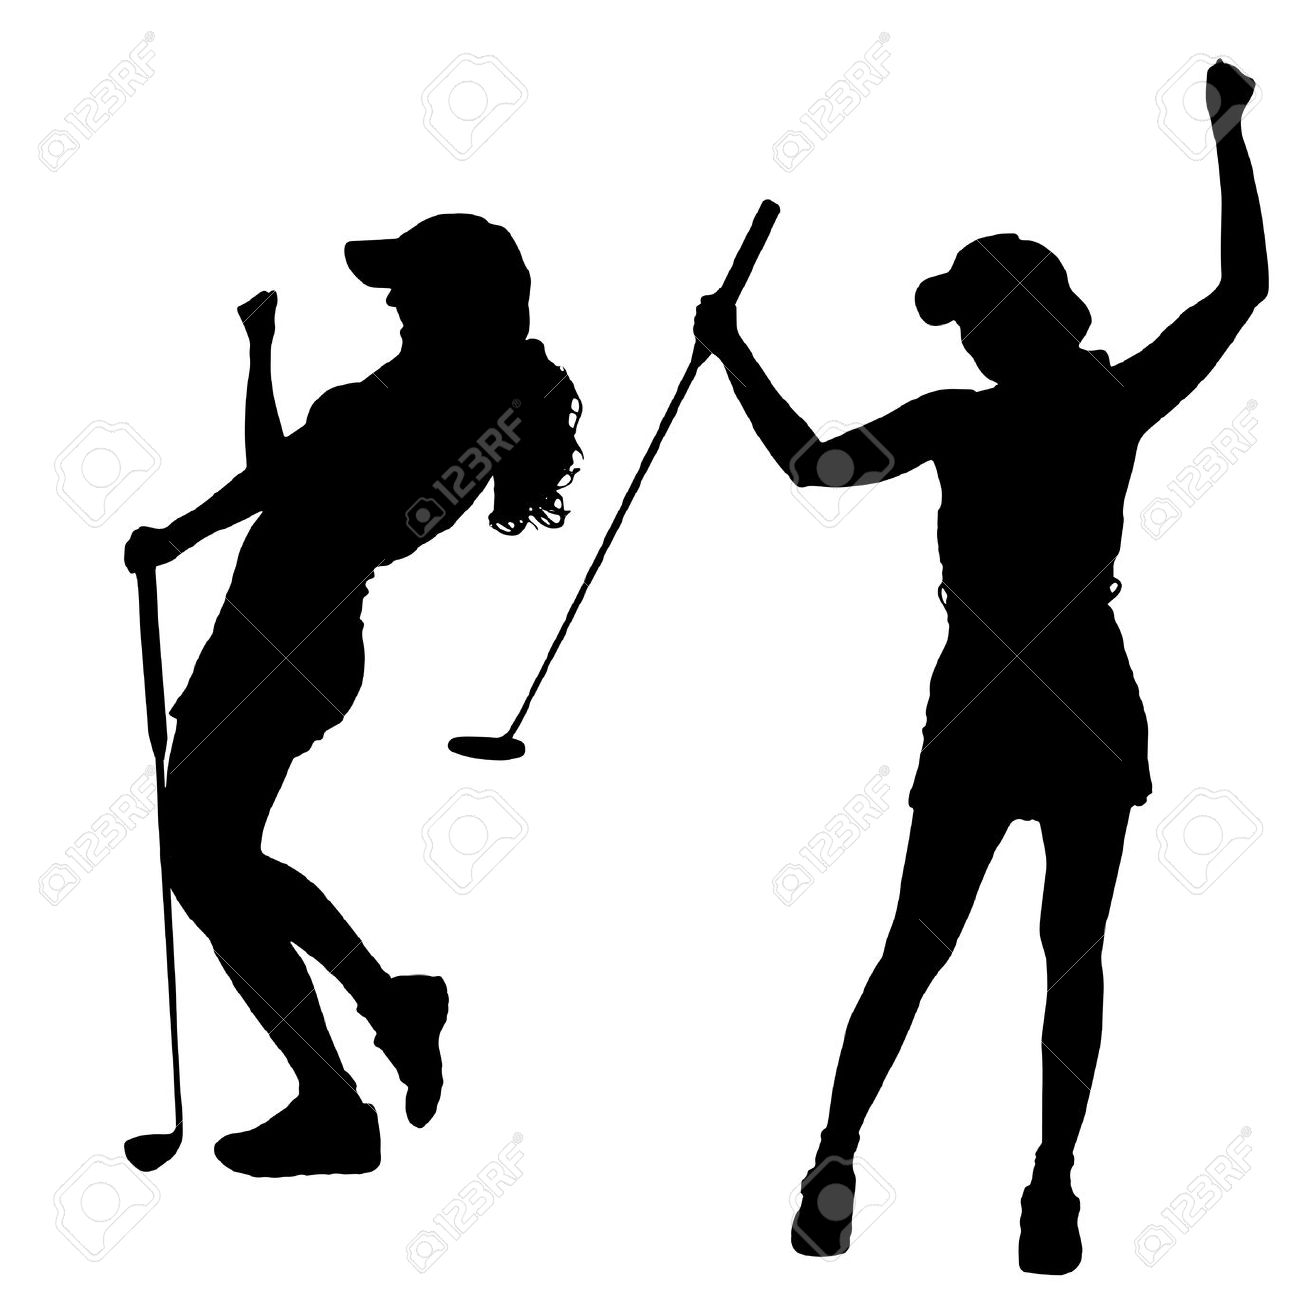 Ladies golf clipart images jpg free library Ladies Golf Clipart | Free download best Ladies Golf Clipart on ... jpg free library